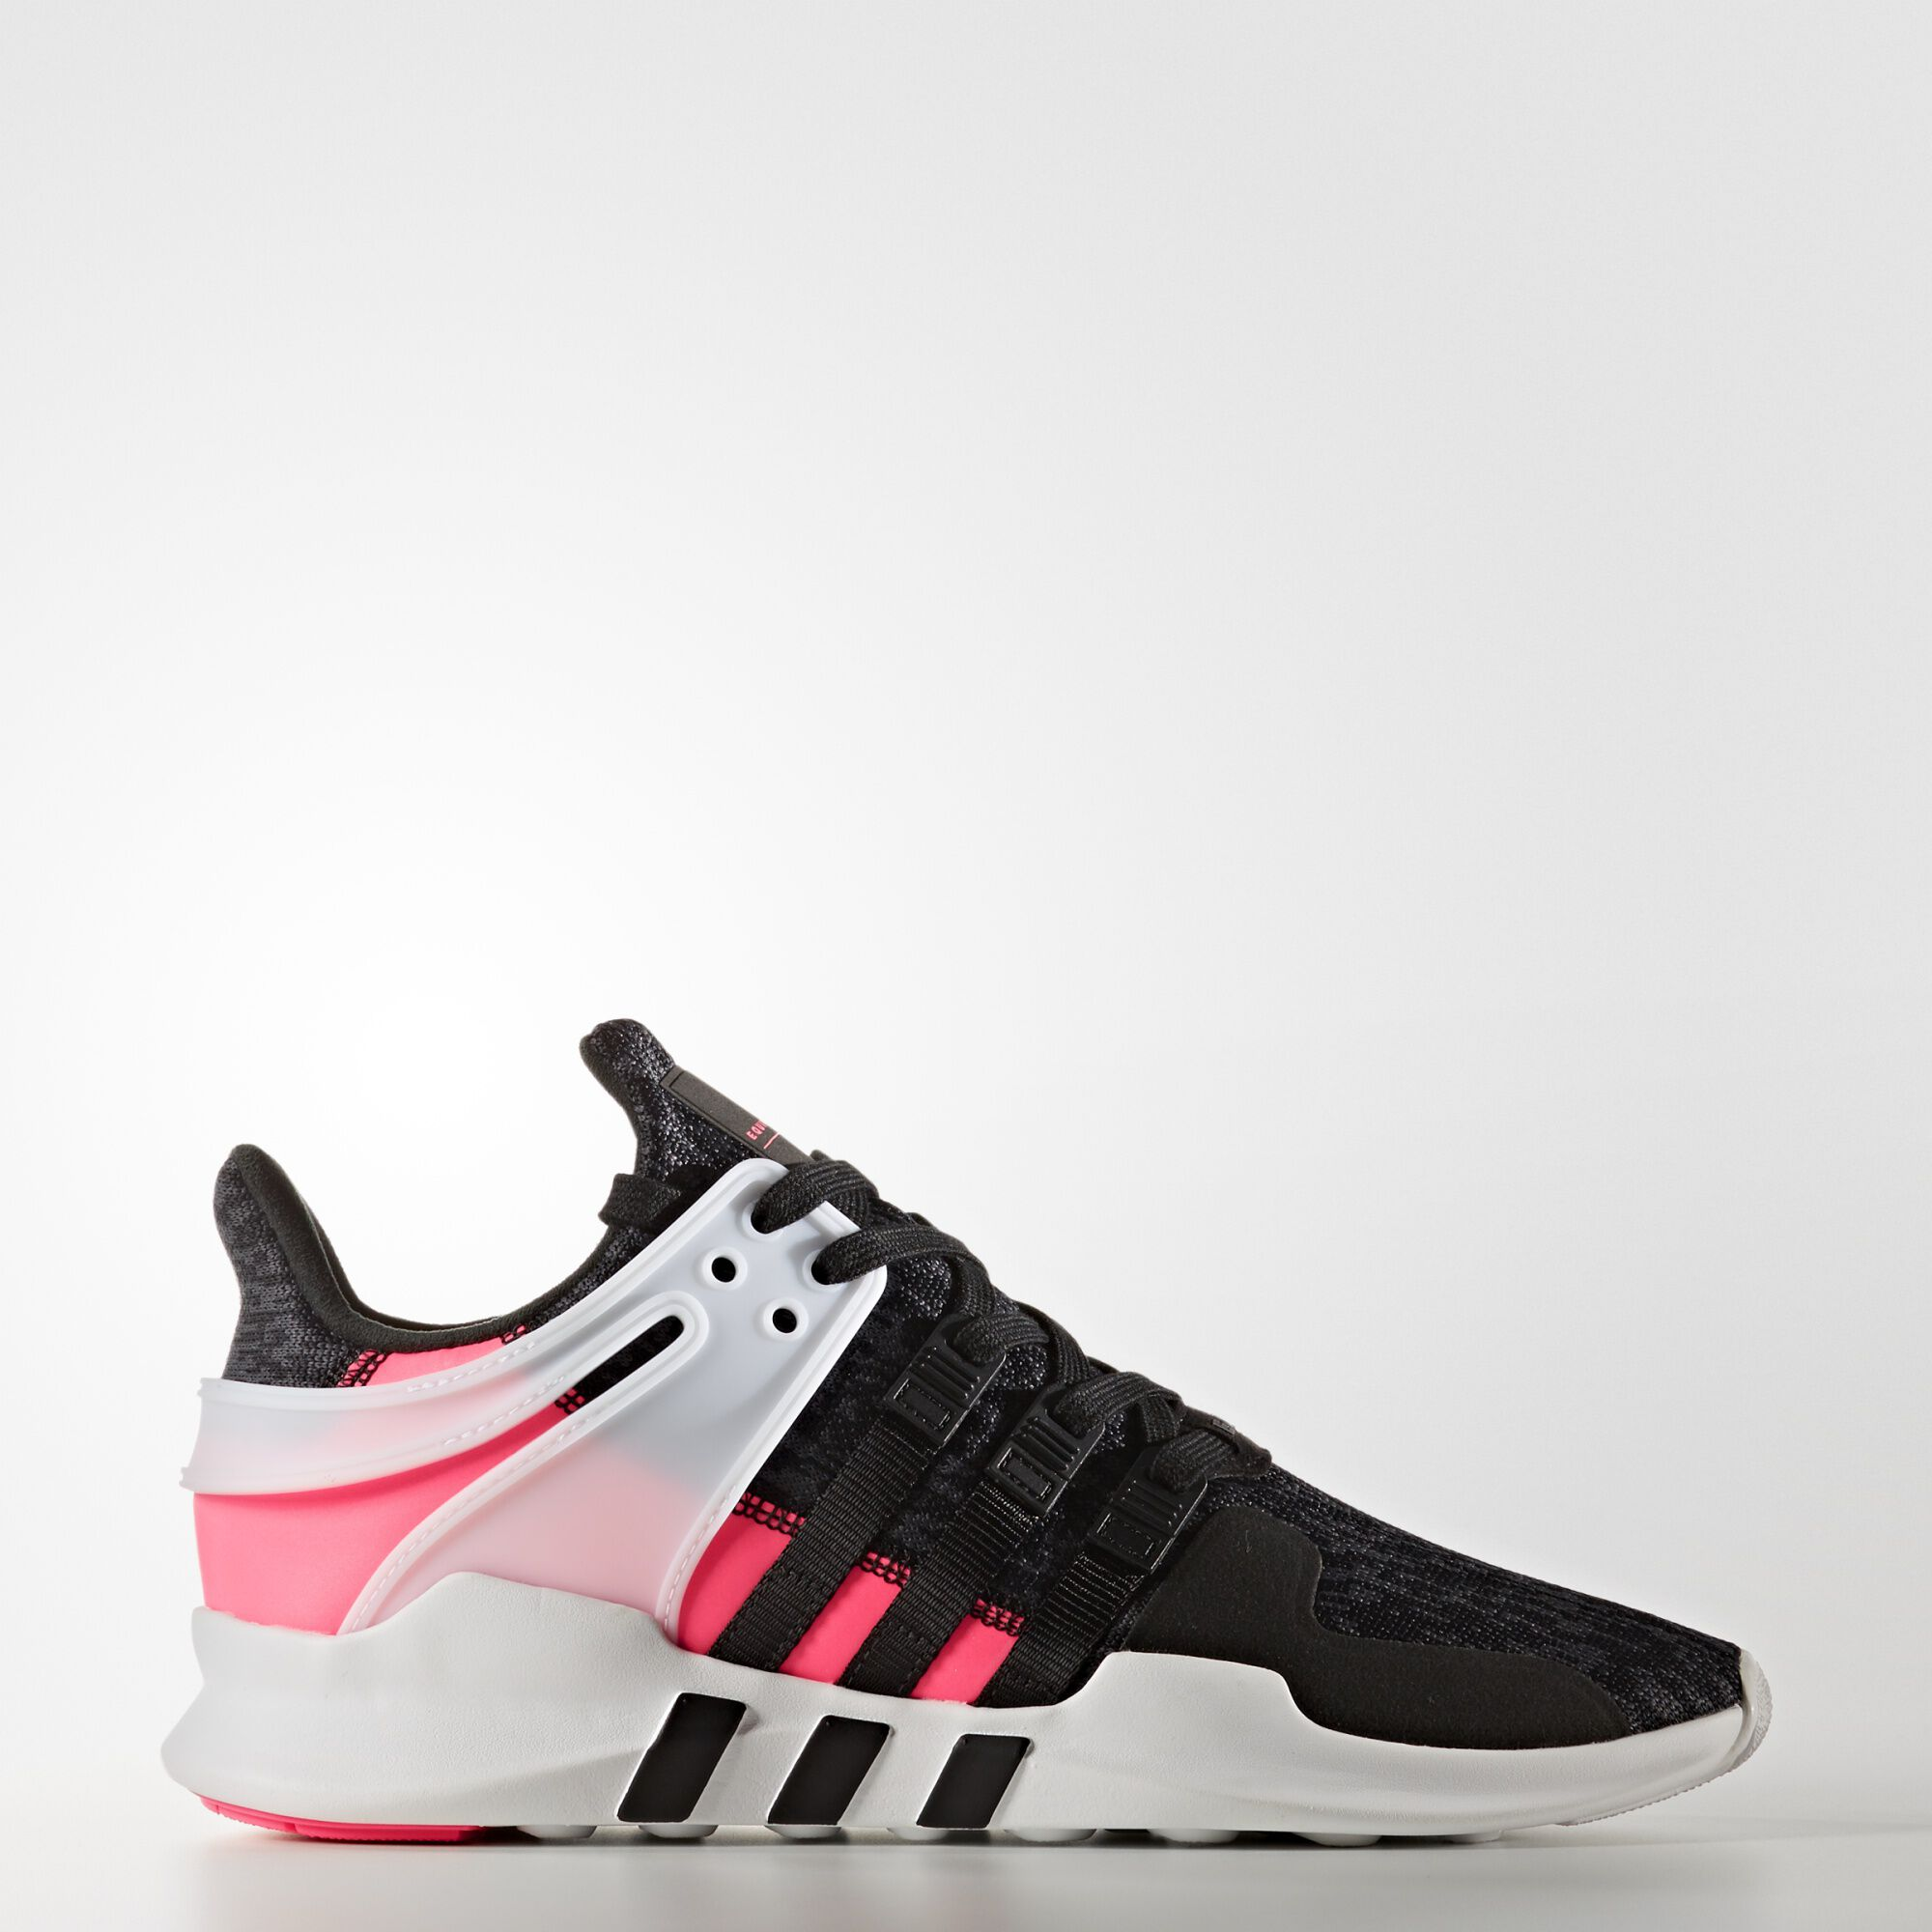 adidas EQT Support 93/17 Shoes Black adidas Switzerland